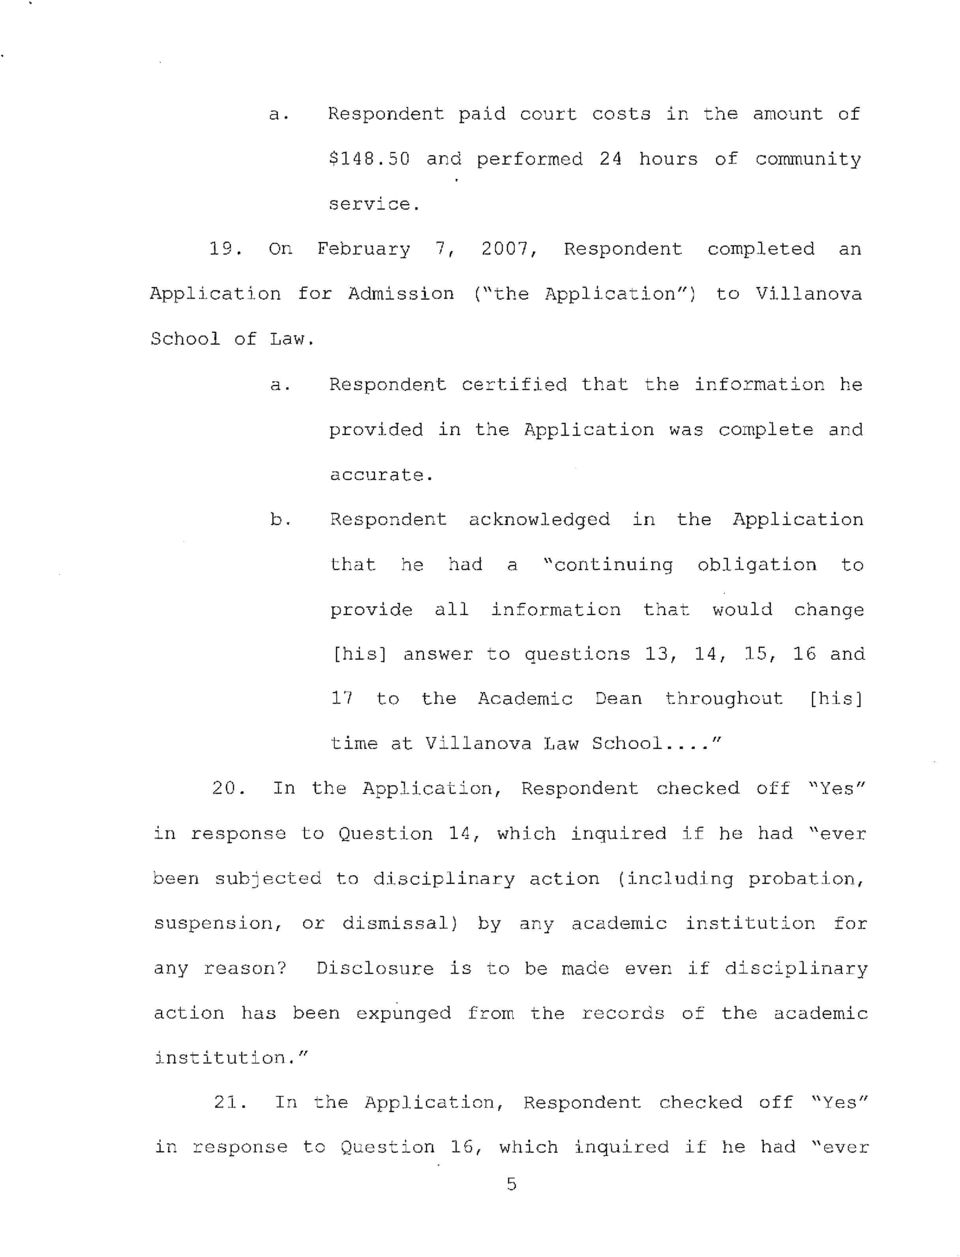 "b. Respondent acknowledged in the Application that he had a ""continuing obligation to provide all information that would change [his] answer to questions 13, 14, 15, 16 and 17 to the Academic Dean"